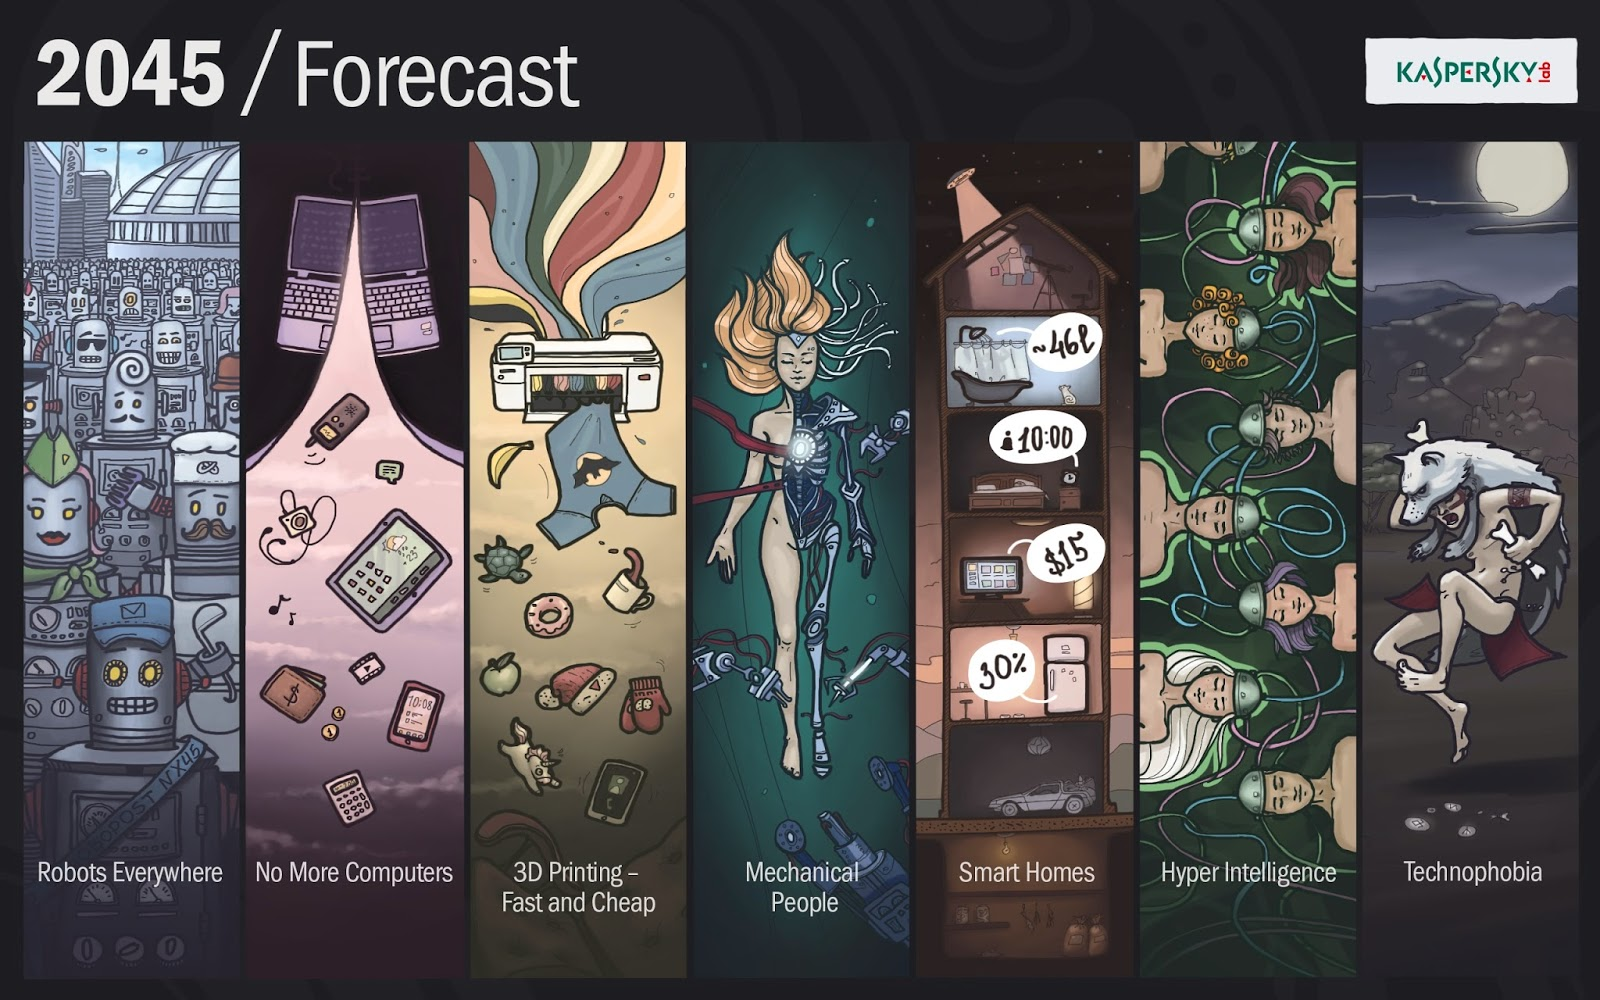 Kaspersky Lab forecast for 2045